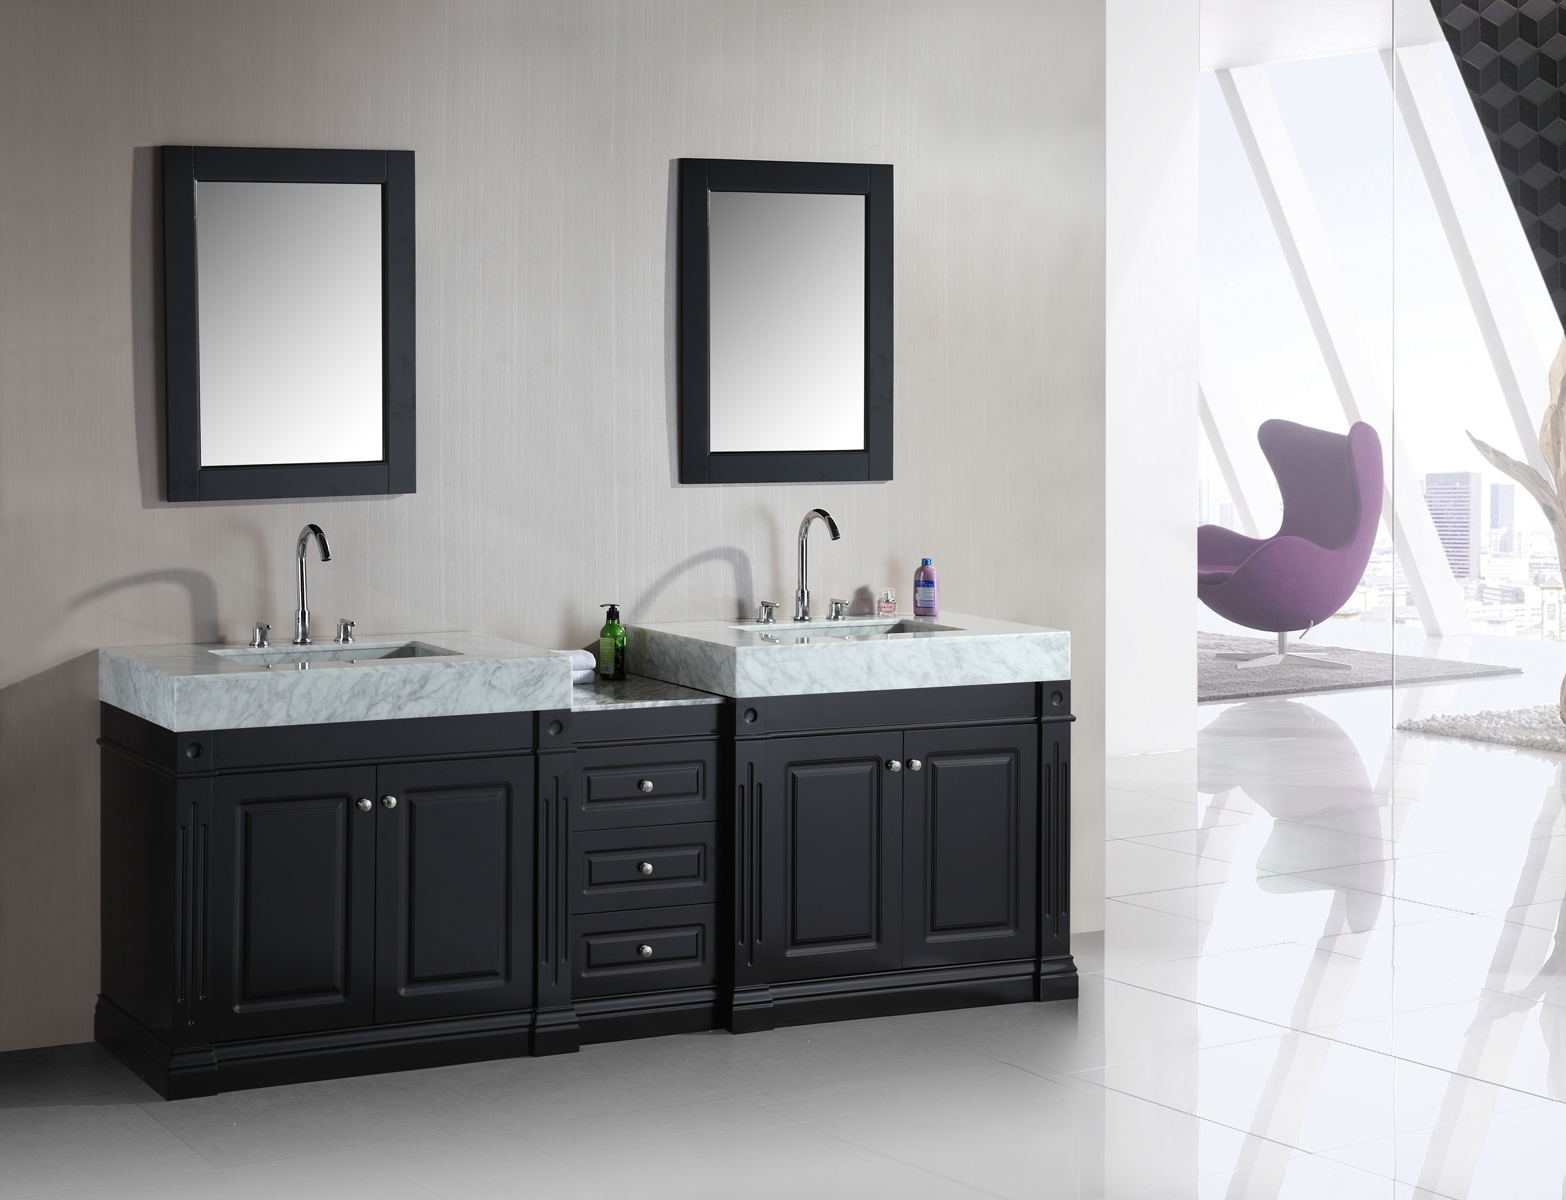 Modular Adorna 88 Inch Double Sink Bathroom Vanity Set With Trough Style Sinks with Luxury Bathroom Sink Vanities